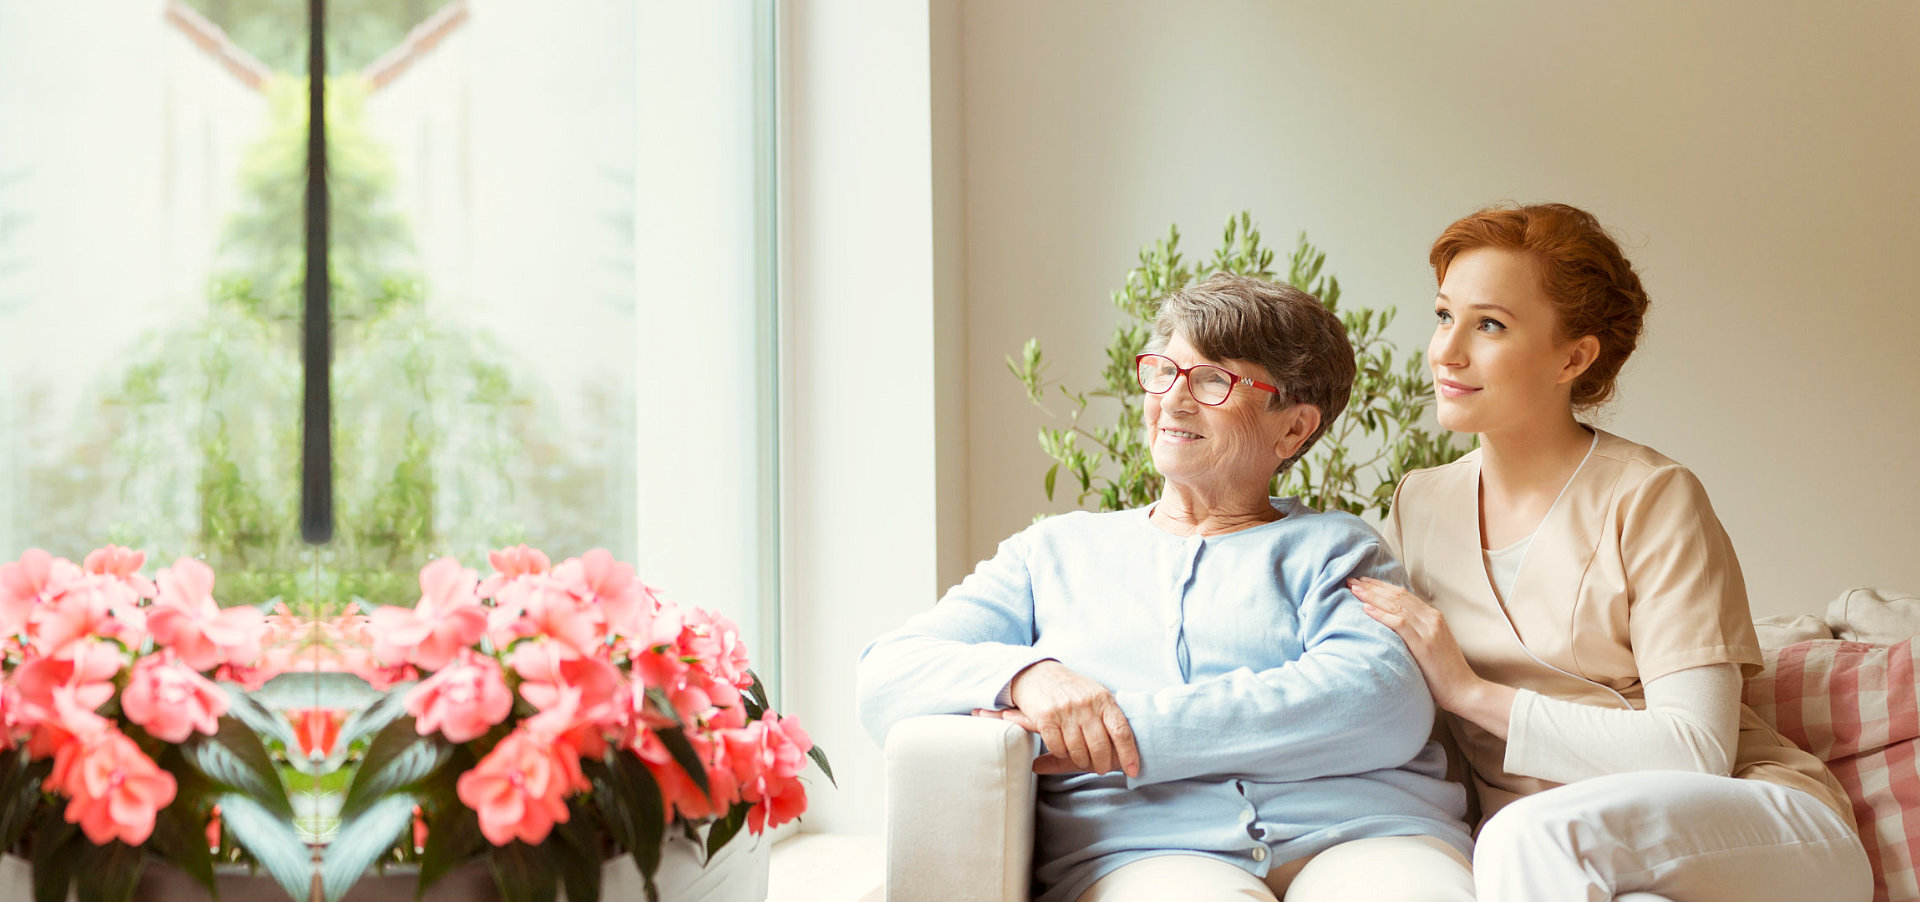 a photo of a caregiver sitting next to a senior woman